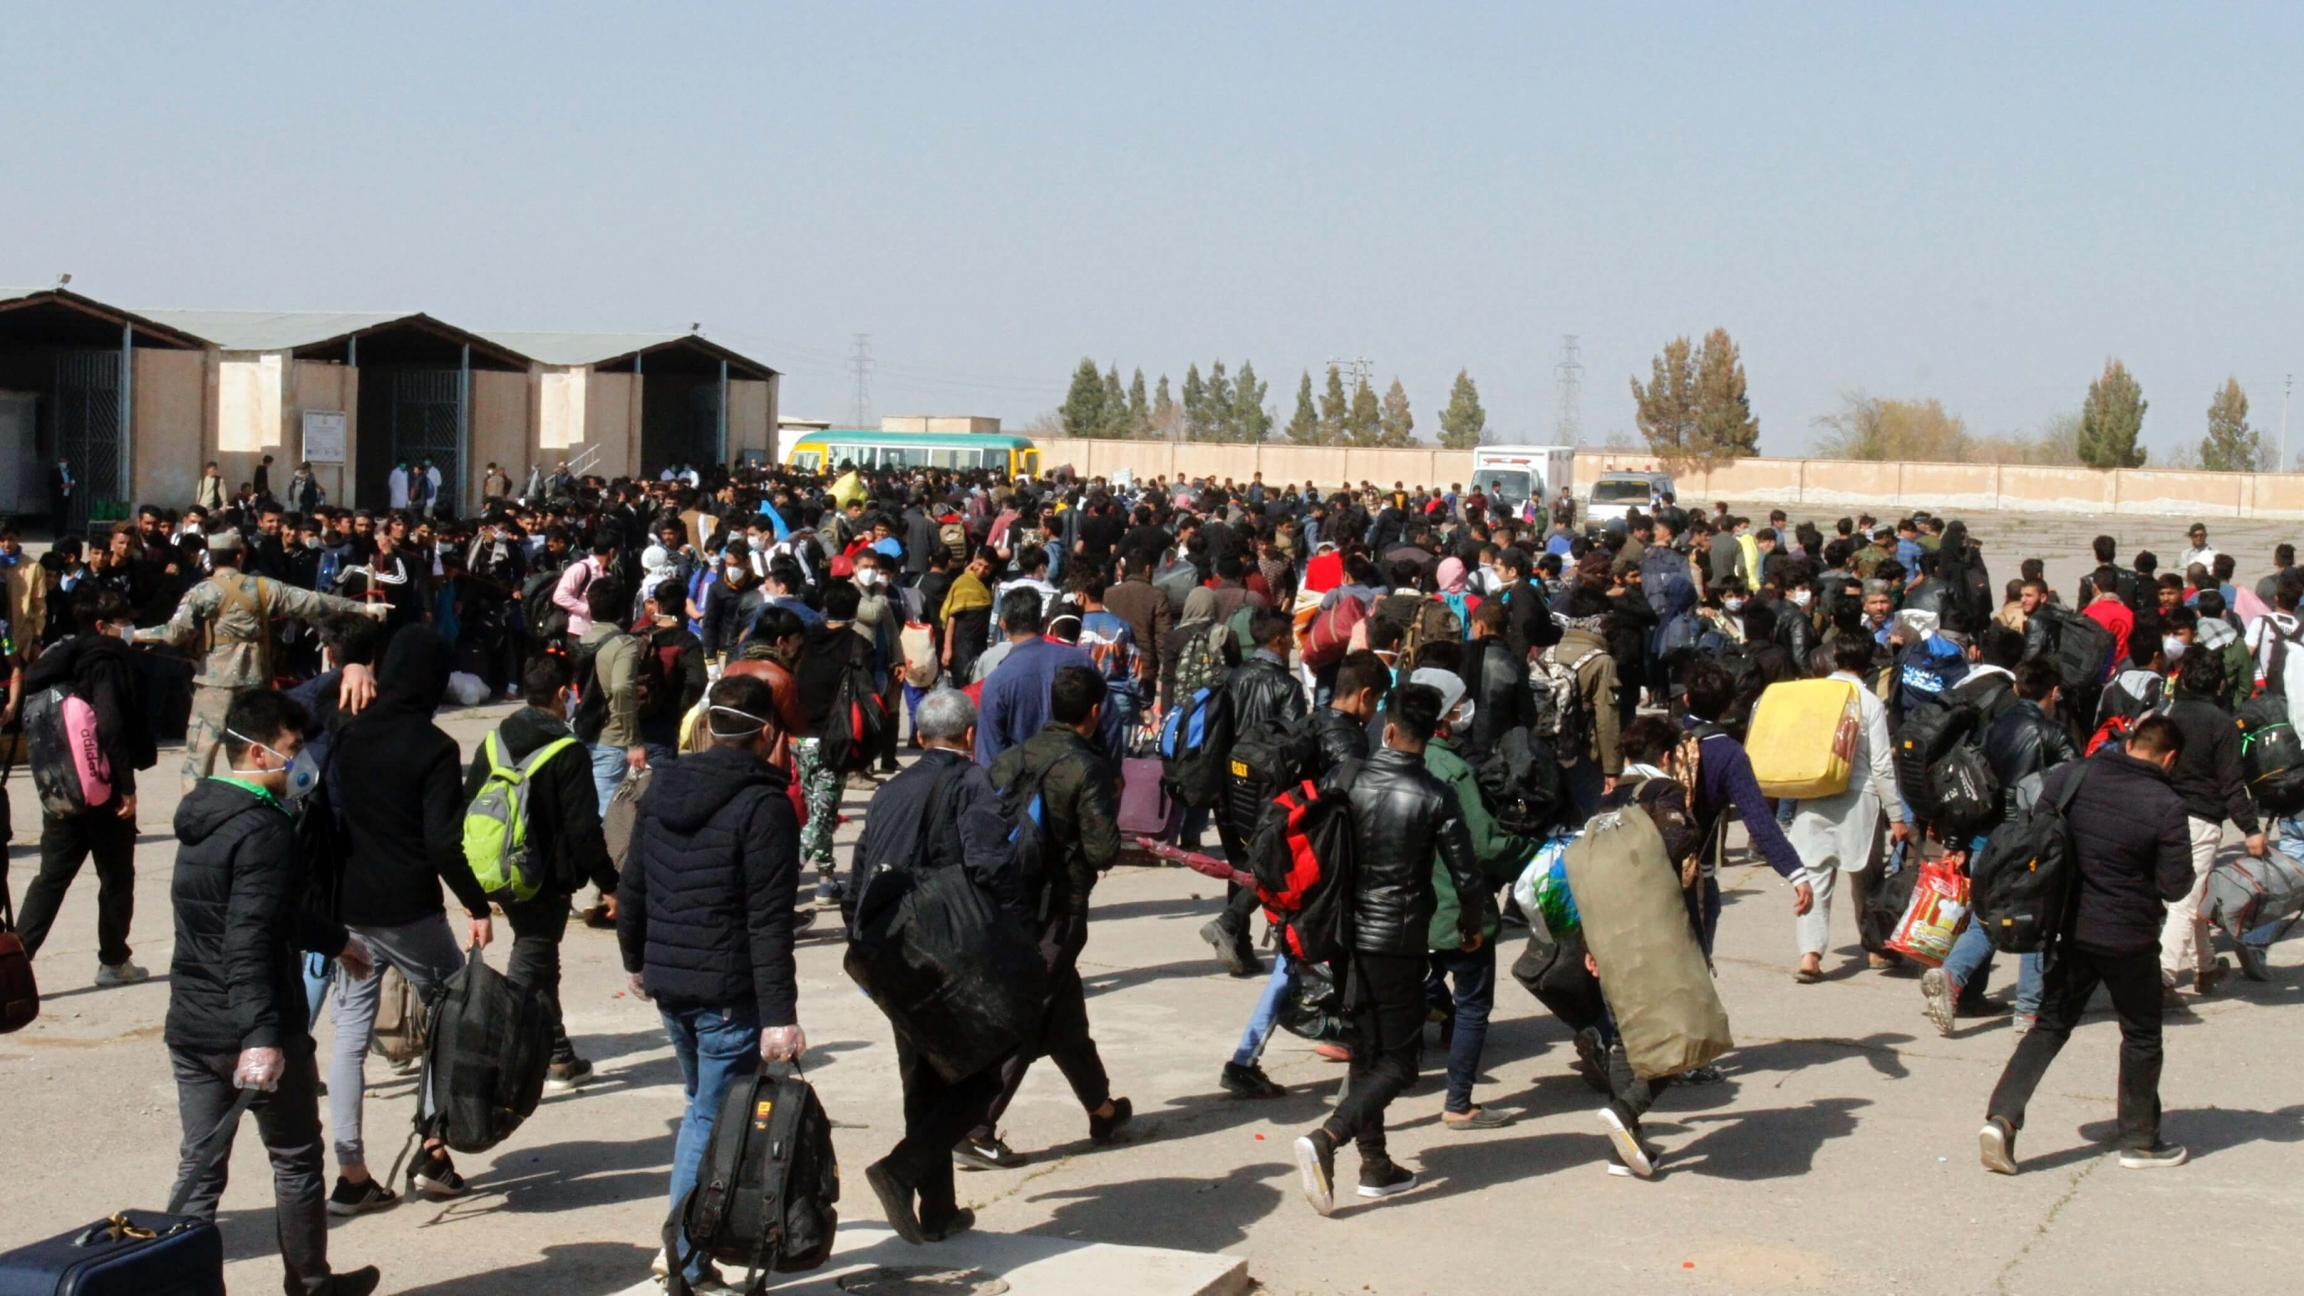 A large group of refugees walk through an Afghanistan-Iran border point.